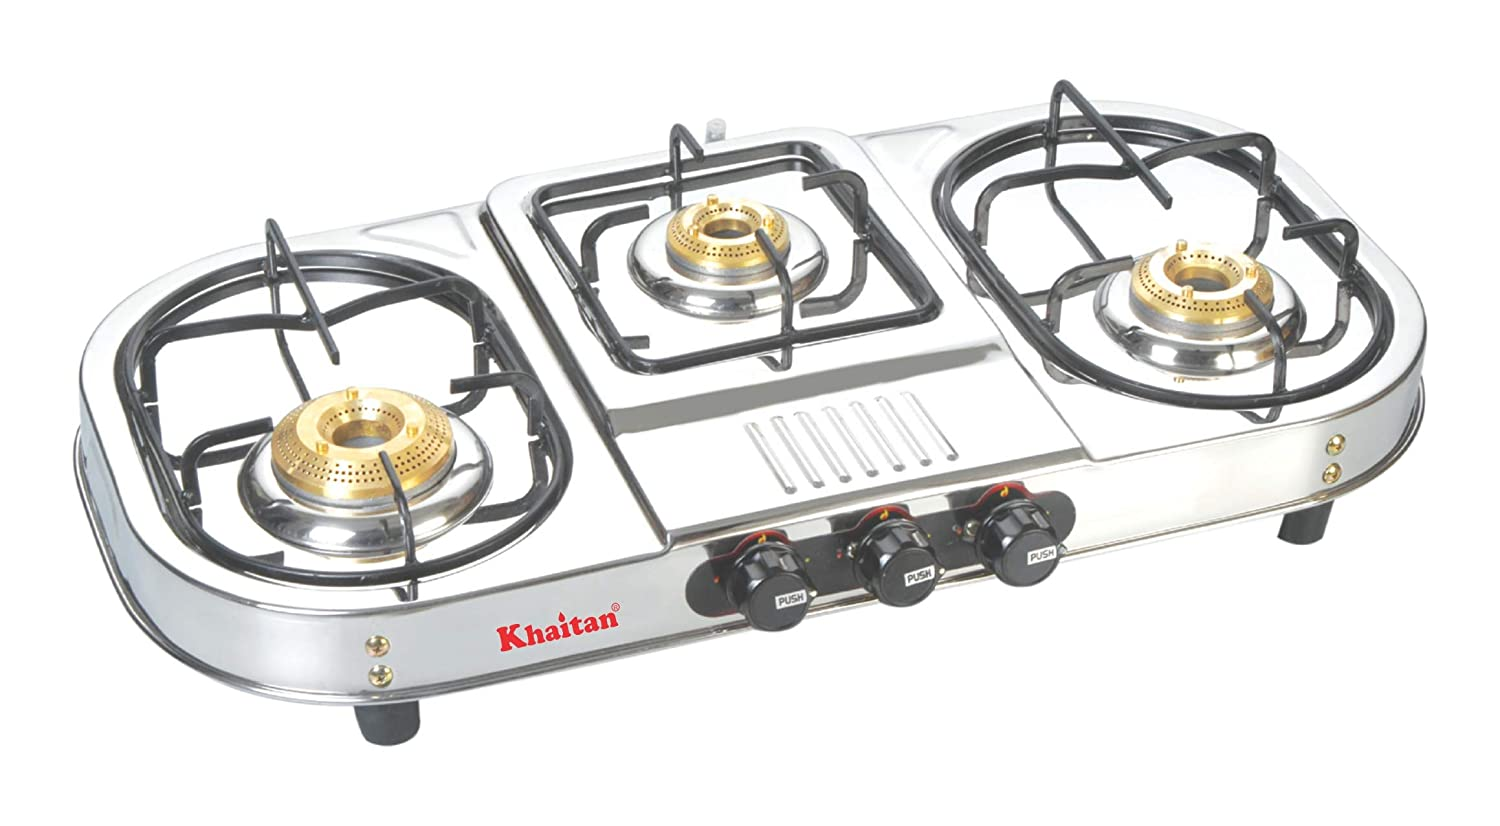 Khaitan 3 Burner Gas Stove Draw Double Decker Stainless Steel